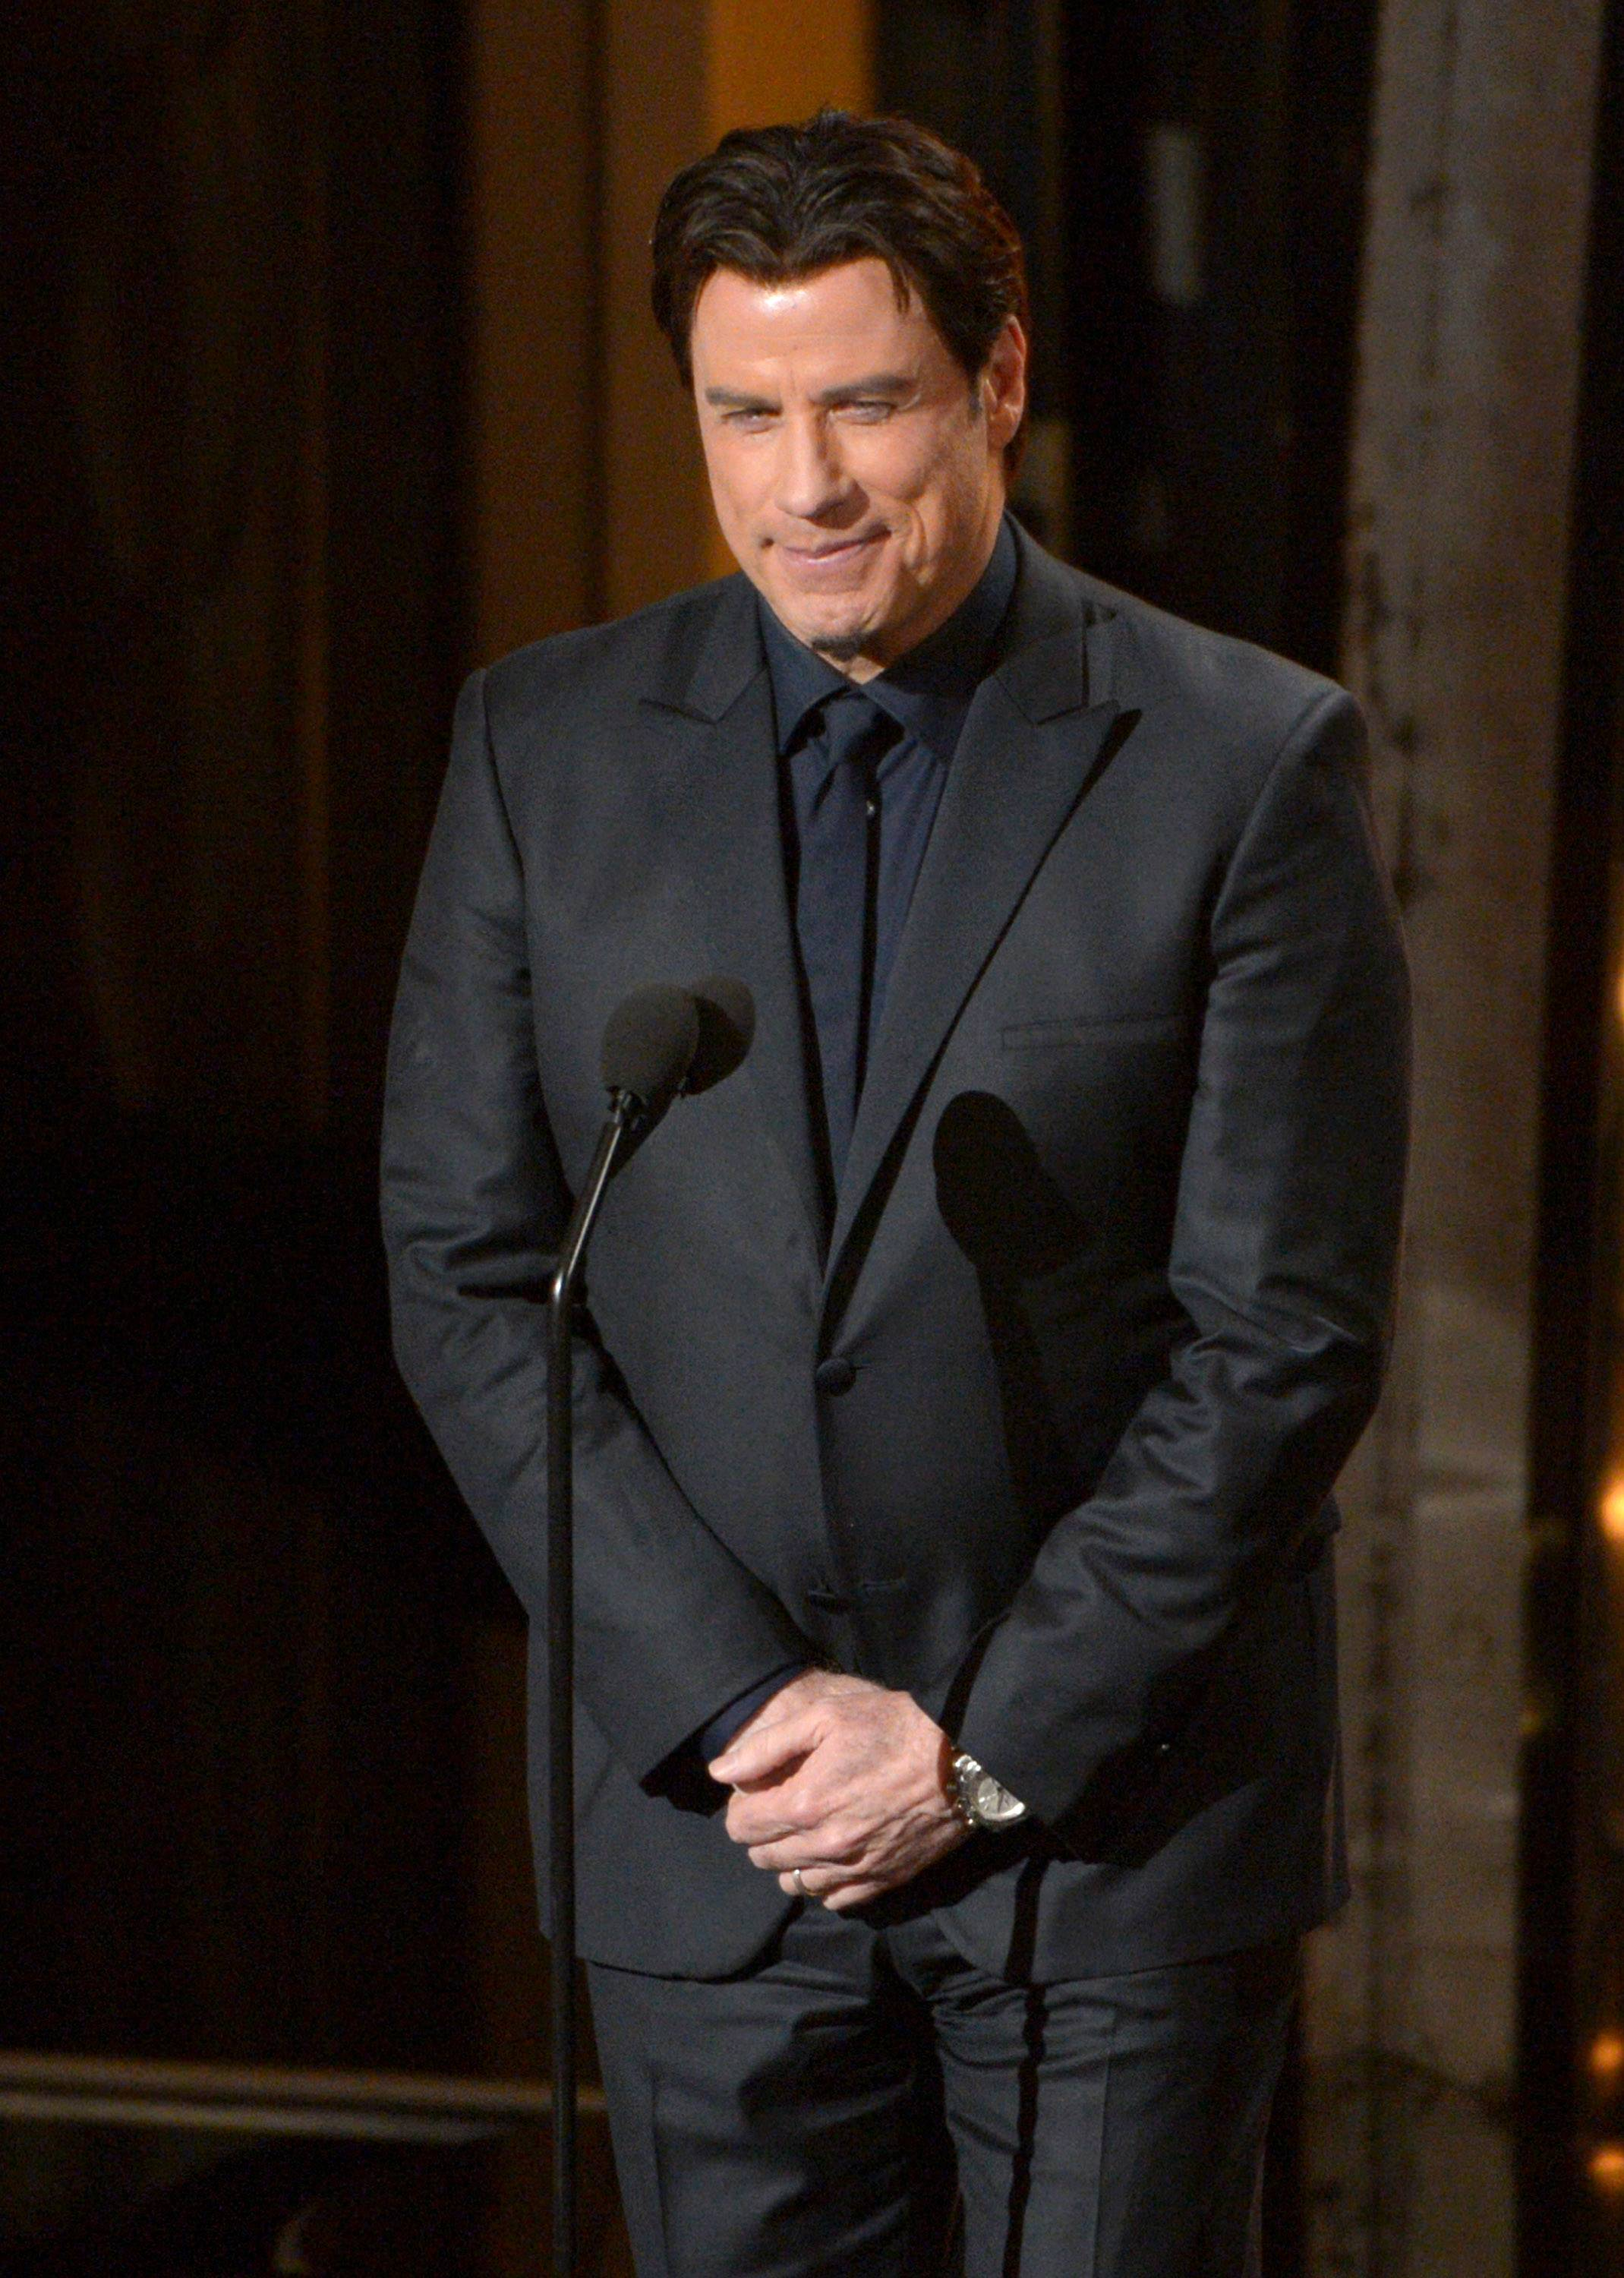 John Travolta has apologized to Tony Award winner Idina Menzel for mangling the pronunciation of her name during the Oscars telecast Sunday.